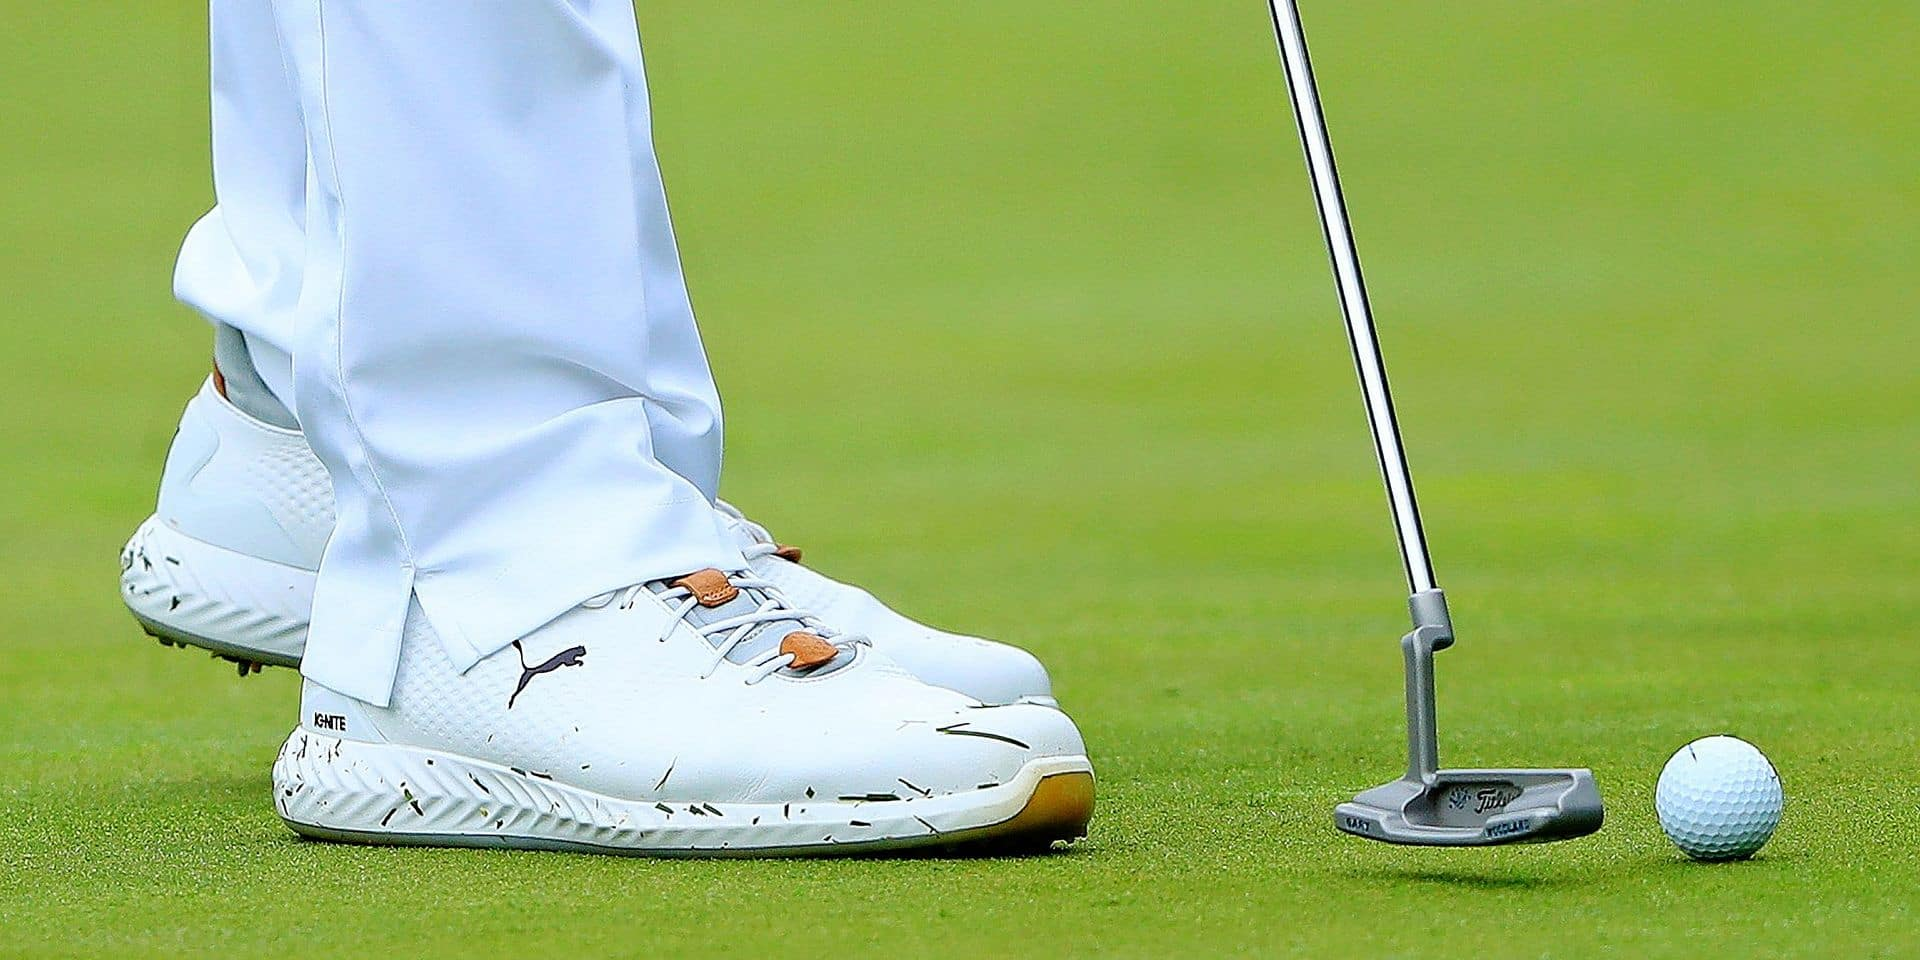 DUBLIN, OHIO - MAY 30: Detail of the Puma Special Edition shoes of Gary Woodland during the first round of The Memorial Tournament Presented by Nationwide at Muirfield Village Golf Club on May 30, 2019 in Dublin, Ohio. Sam Greenwood/Getty Images/AFP == FOR NEWSPAPERS, INTERNET, TELCOS & TELEVISION USE ONLY ==